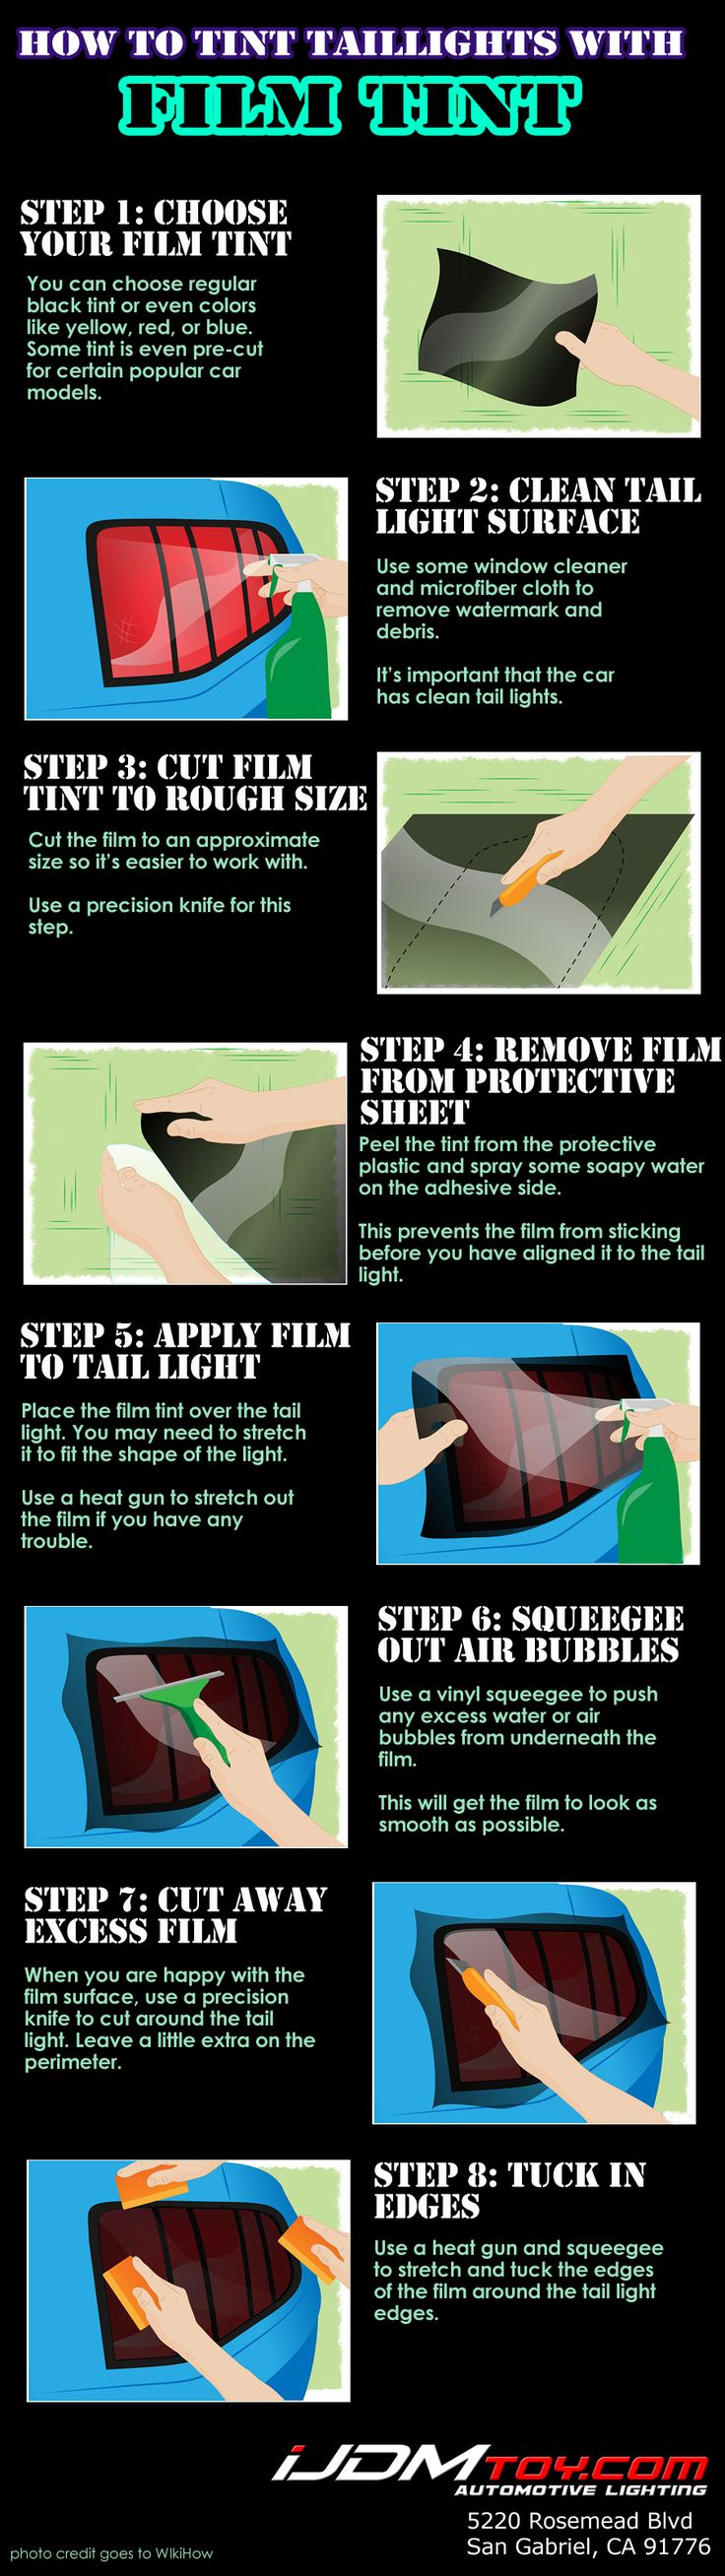 Step by step pictorial on how to apply film tint on car headlights.  #iJDMTOY #LED #JDM #Cars #FilmTint #CarTint #CarParts #Infographic #HowTo #DIY #Installation